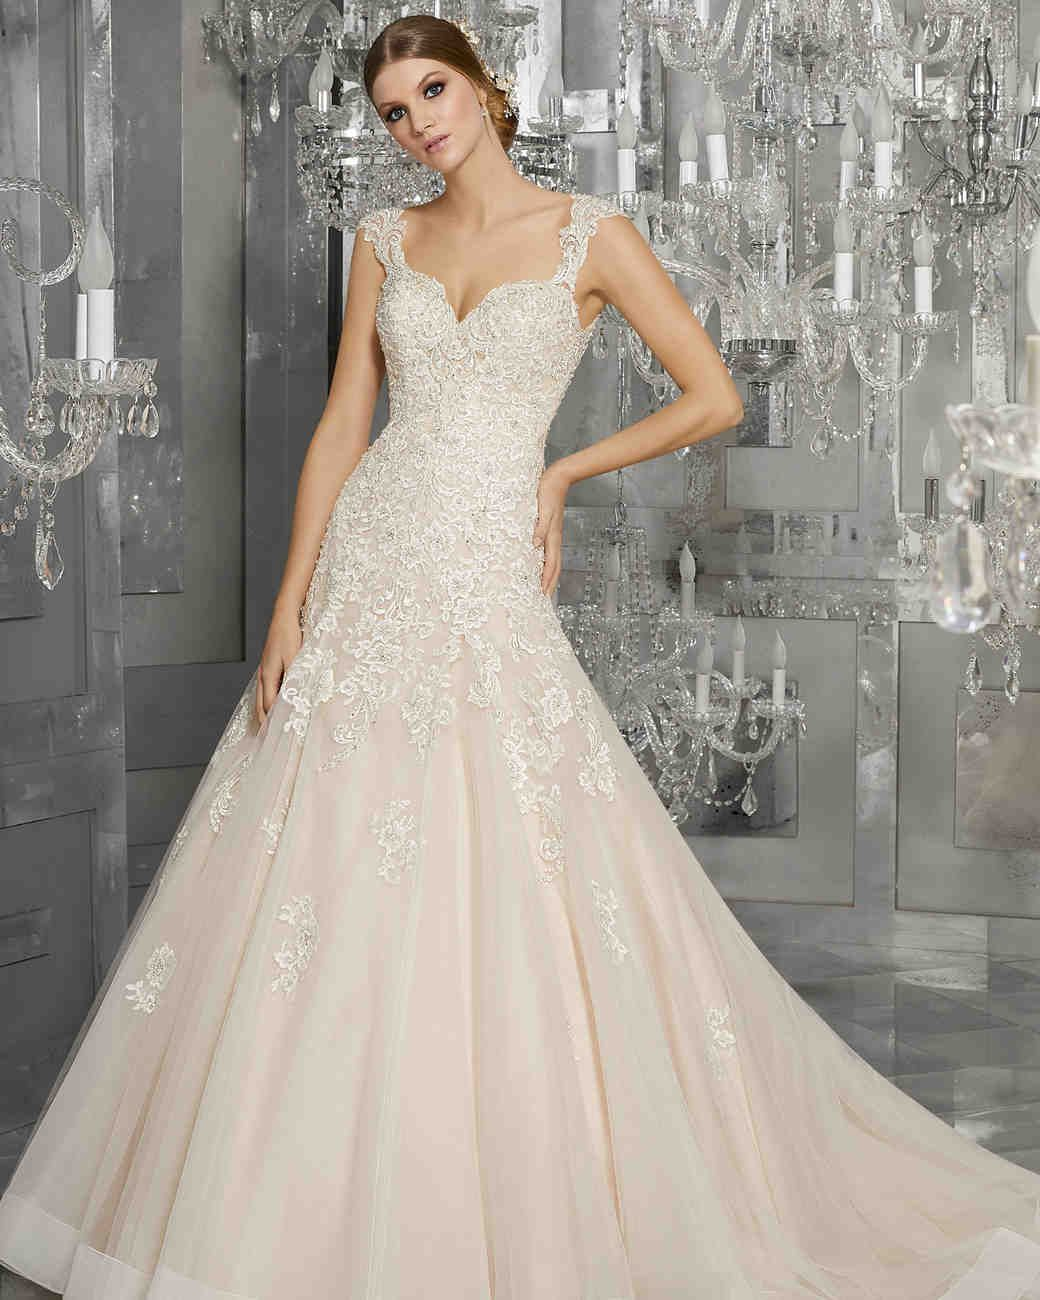 morilee wedding dress spring 2018 v-neck embellished a-line ...